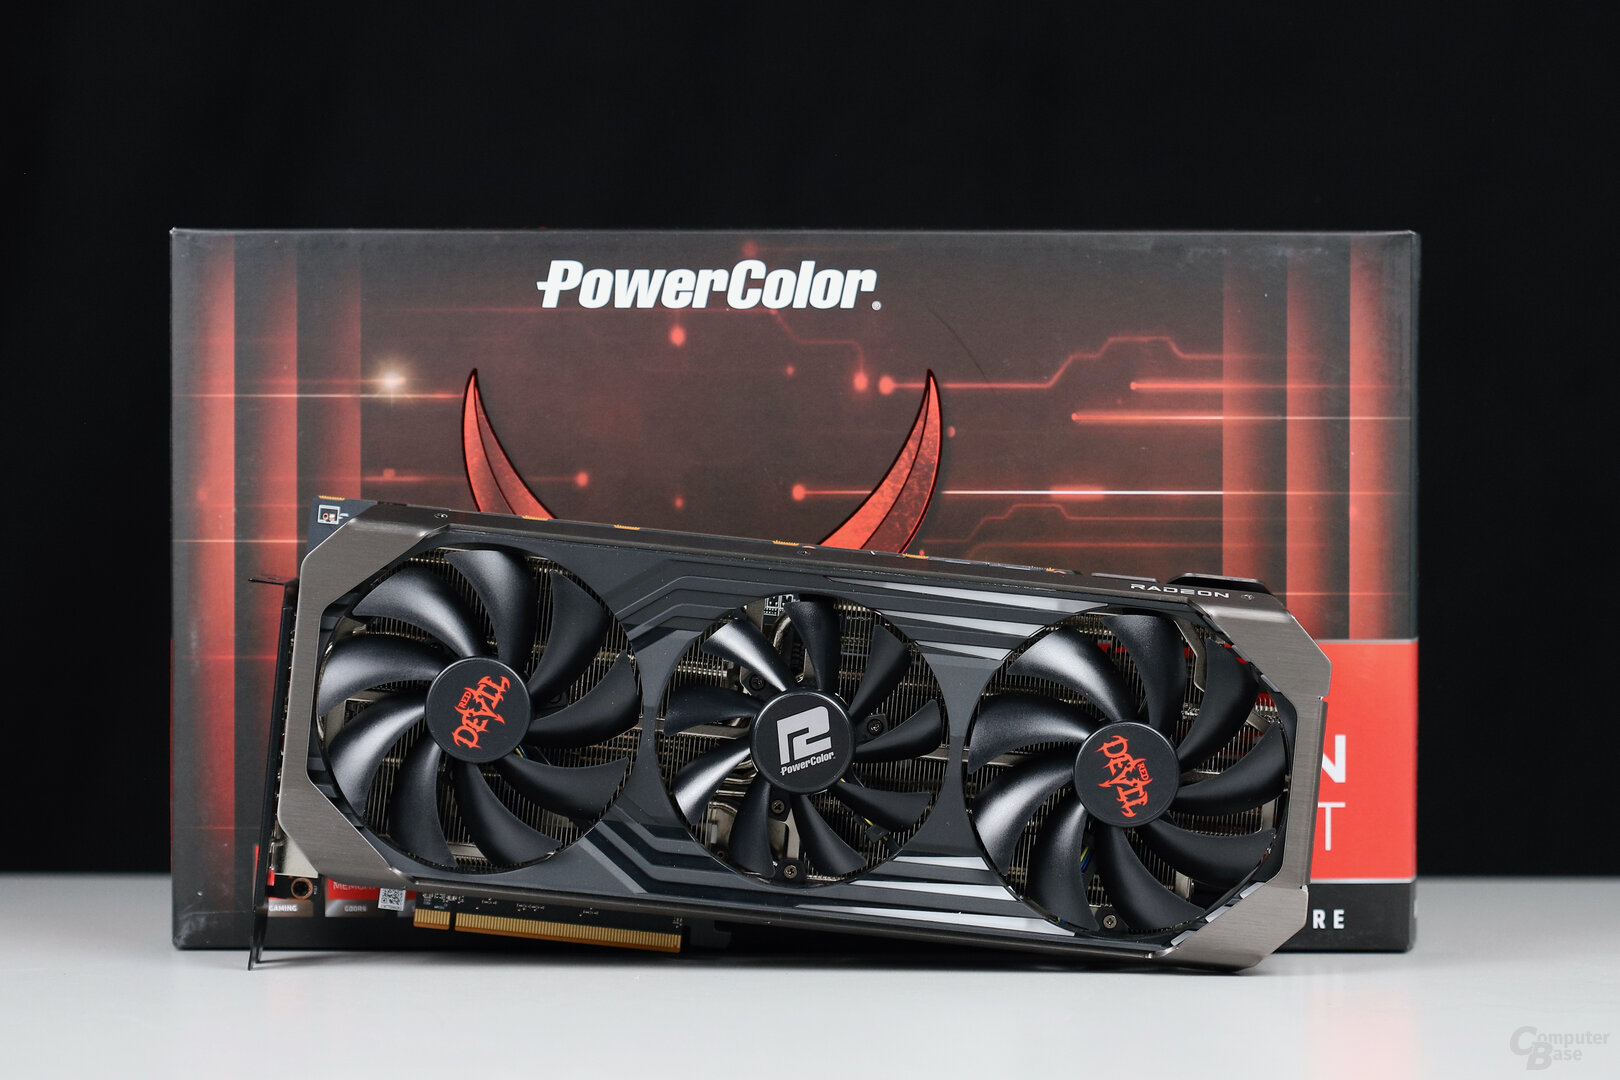 Die PowerColor Radeon RX 6700 XT Red Devil im Test